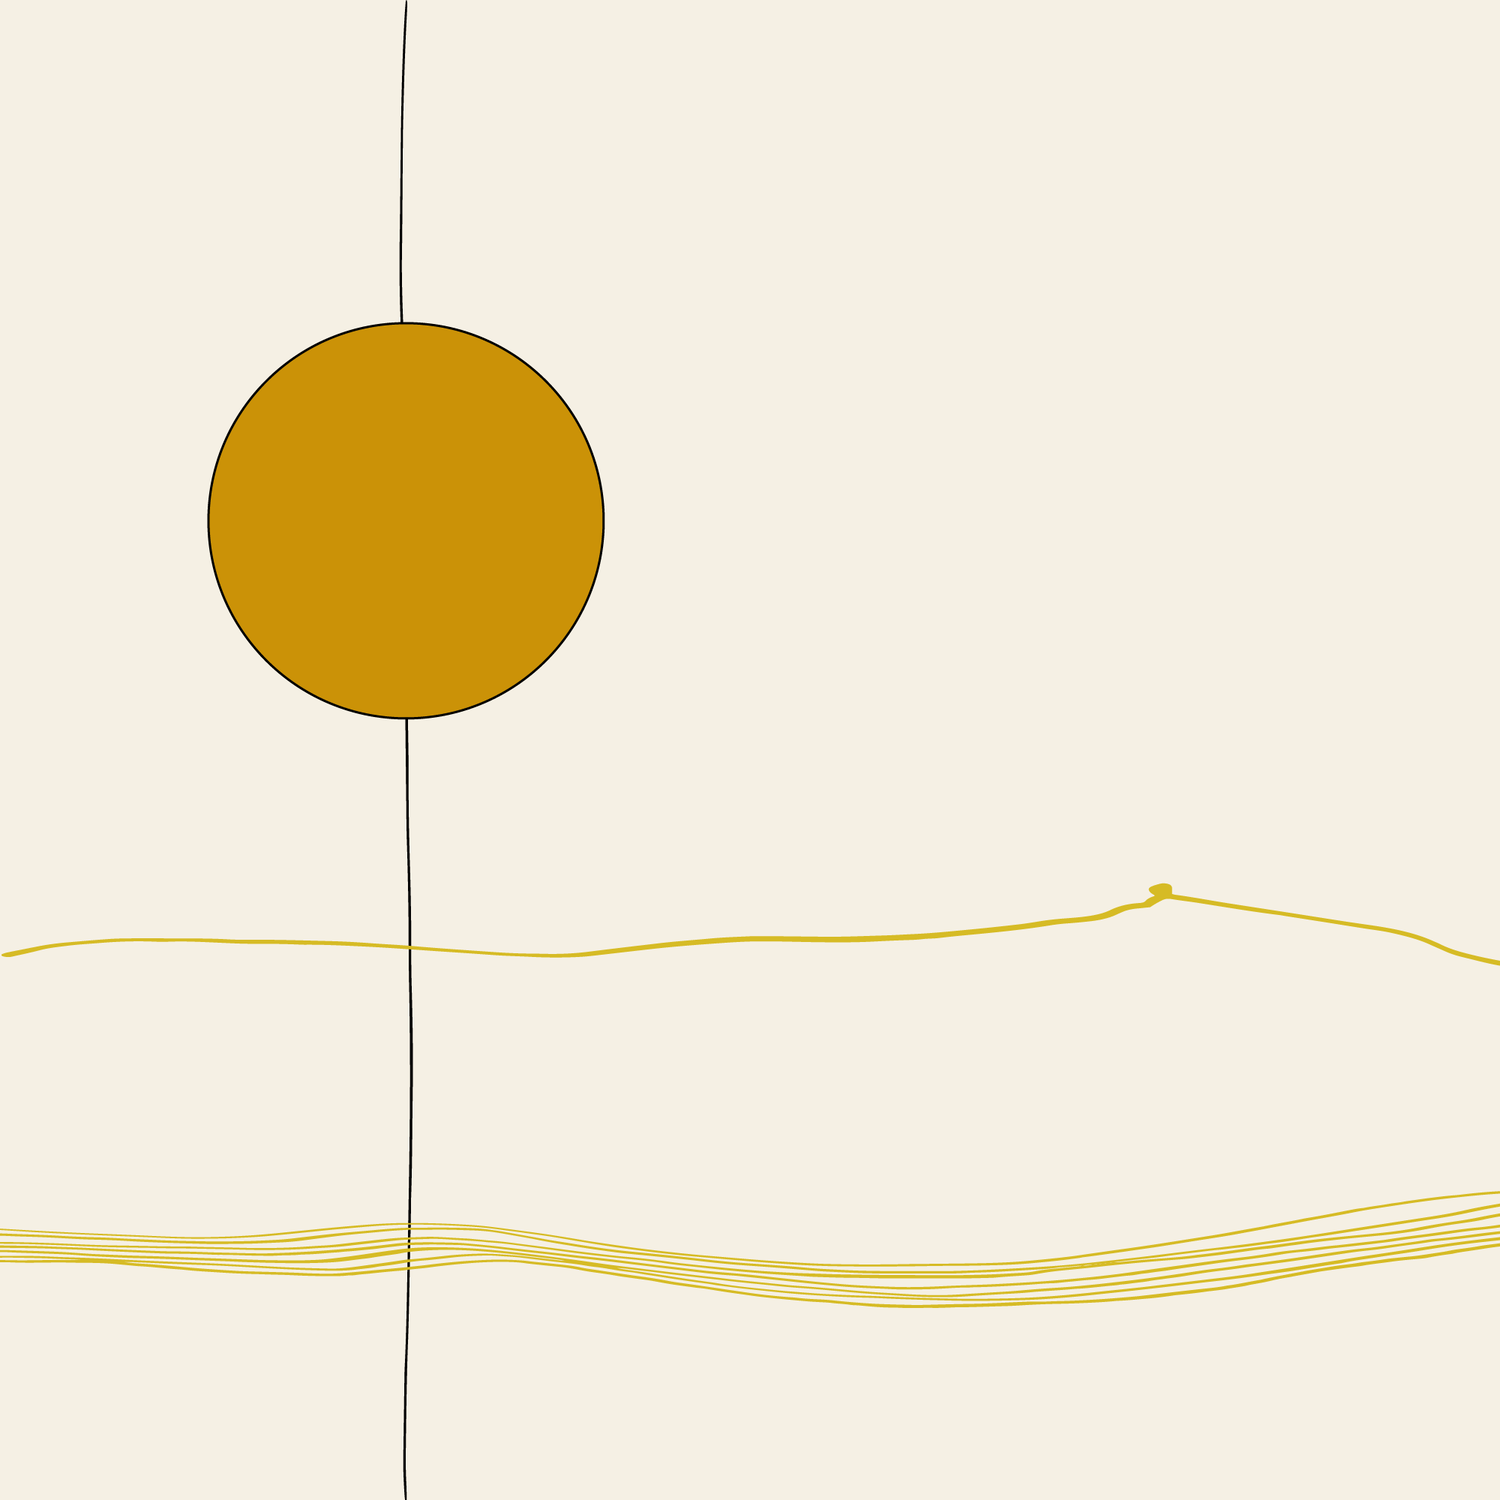 Channeled Messages - [WAITLIST] Conducted through email only, channeled messages aim to align you with Divine and inspired vision so you may gain an understanding for growth, transformation and discernment based on guidance from your Masters, Teachers and Loved One's.